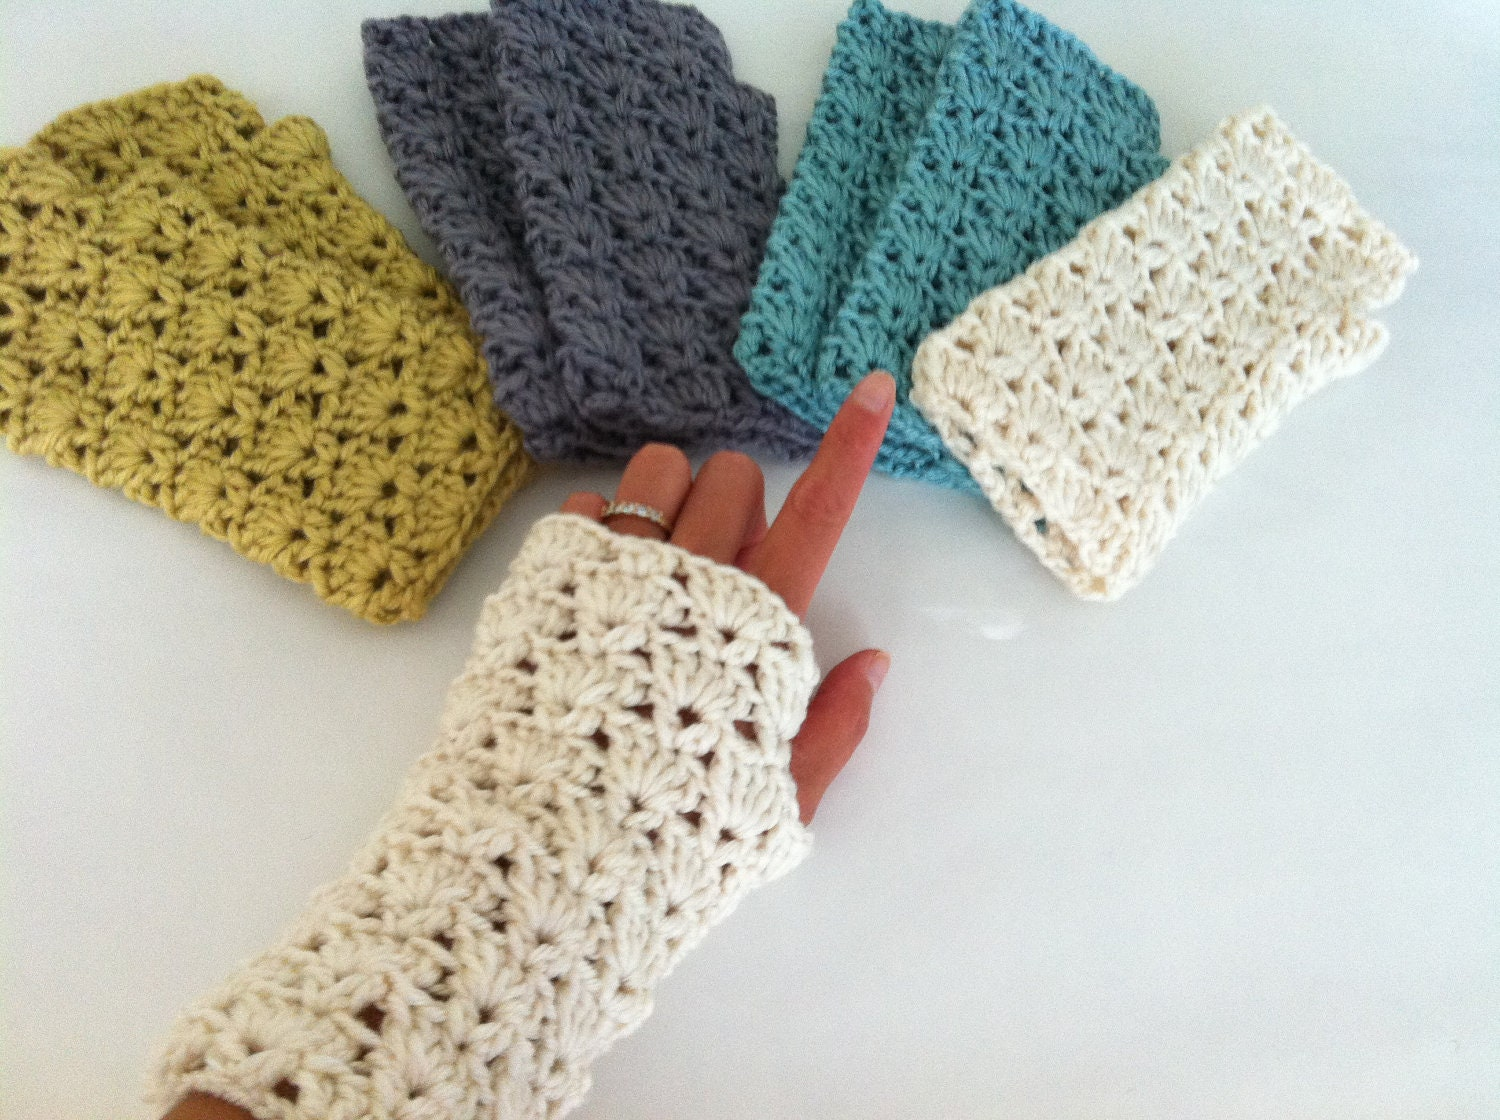 Crochet Gloves : Crochet Shells Fingerless Gloves Crochet wrist by LittleAsiaGirl